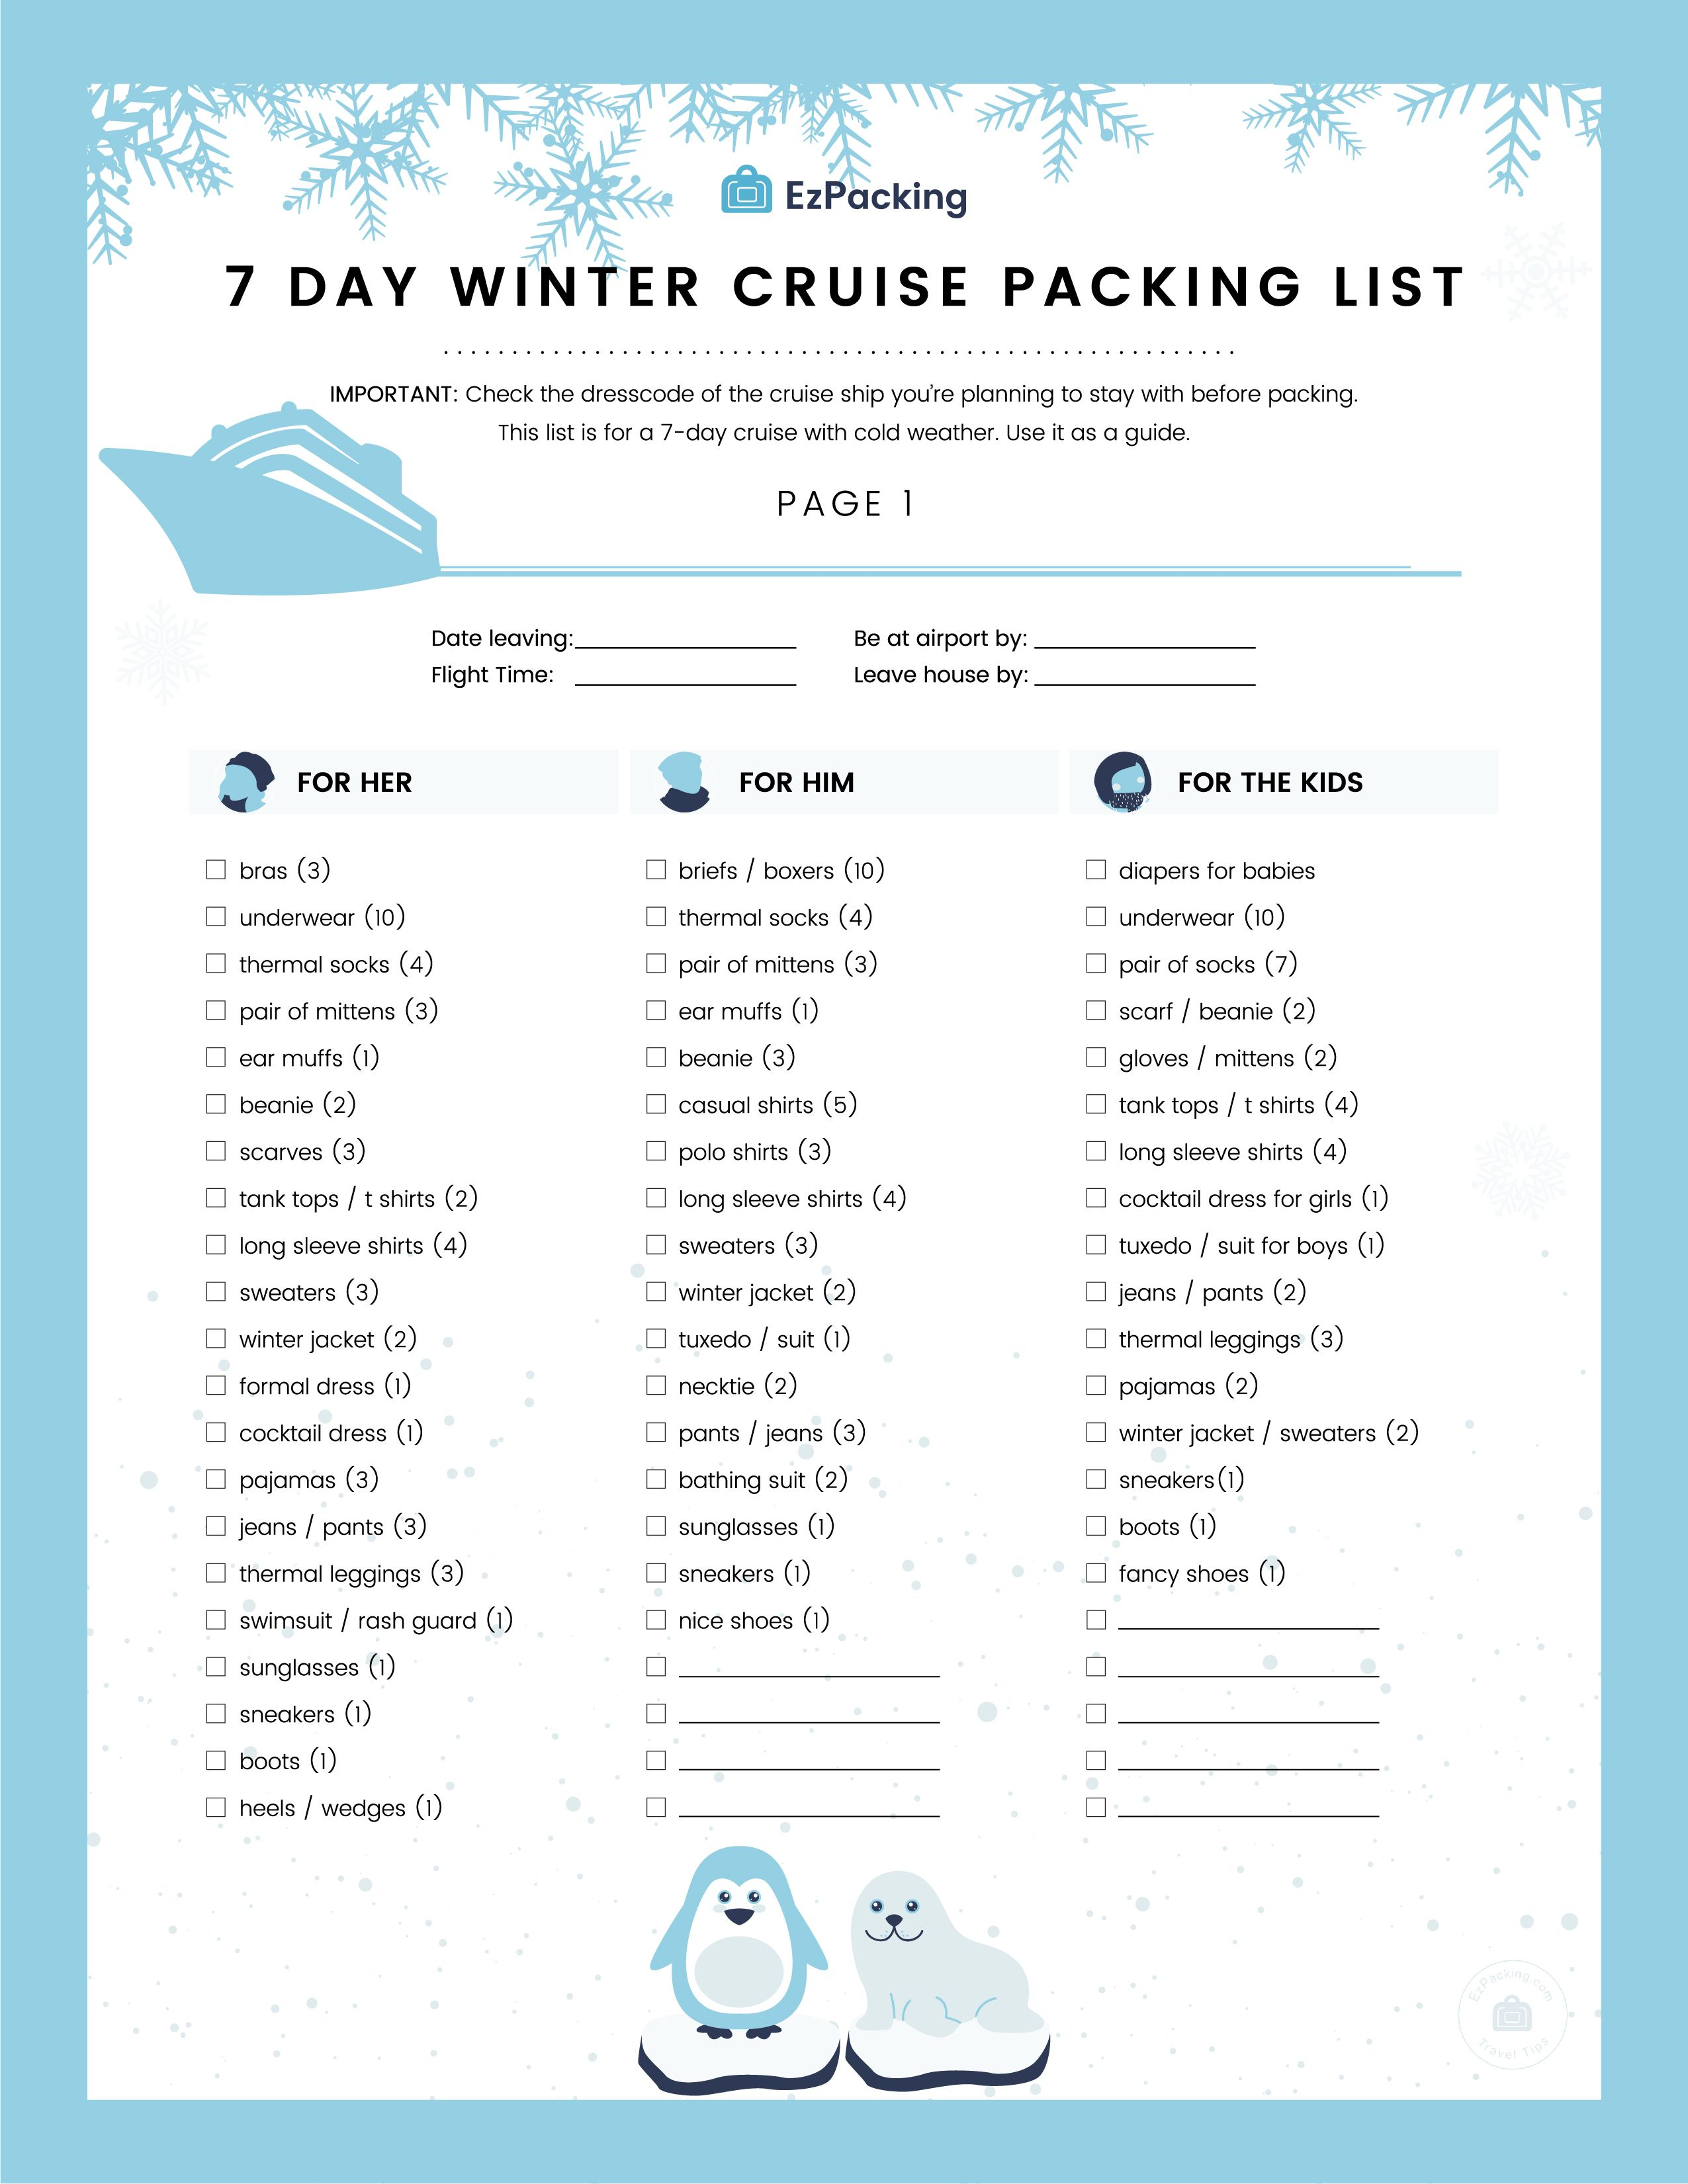 7 Day Winter Cruise Packing List | Going on an Alaskan cruise or